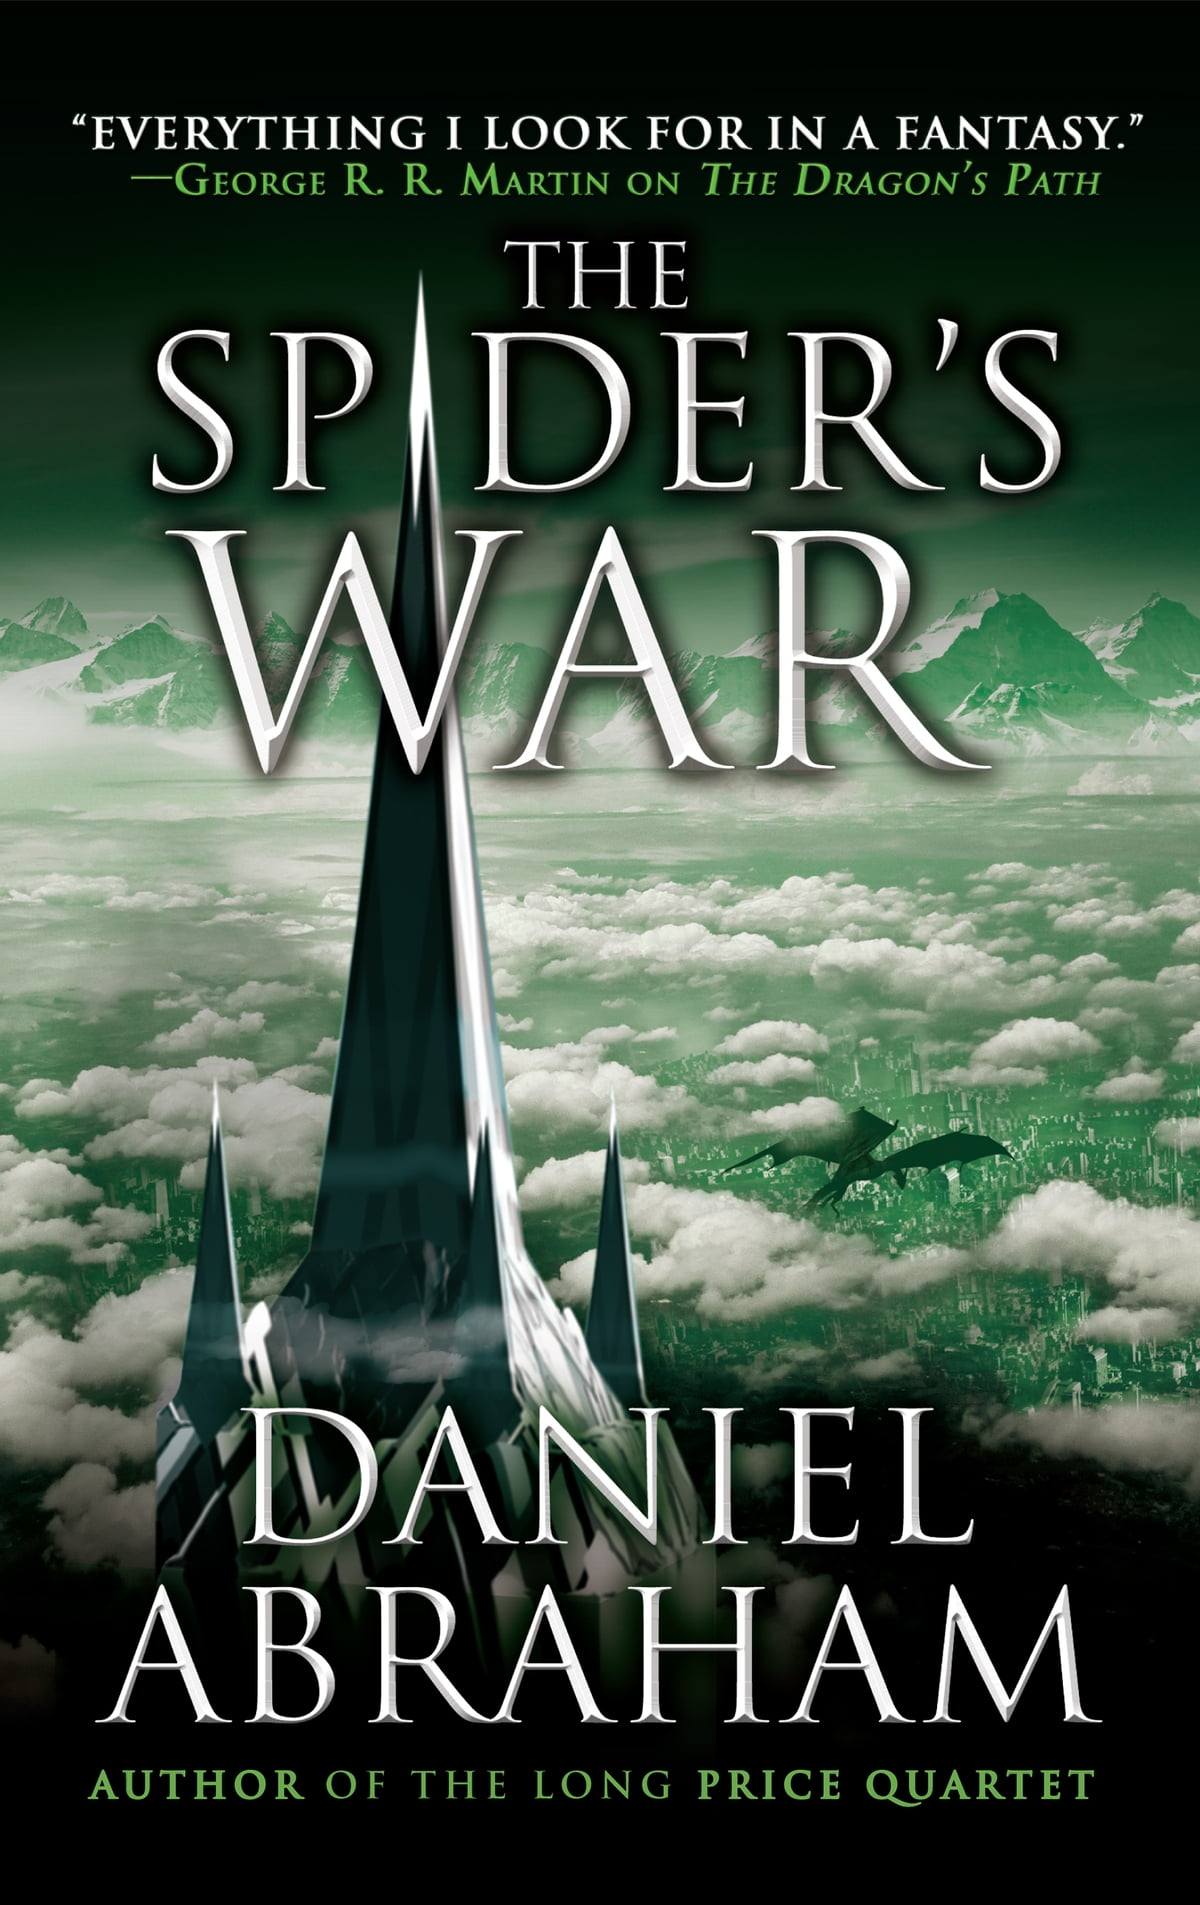 The Spider's War Ebook By Daniel Abraham  9780316204040  Rakuten Kobo